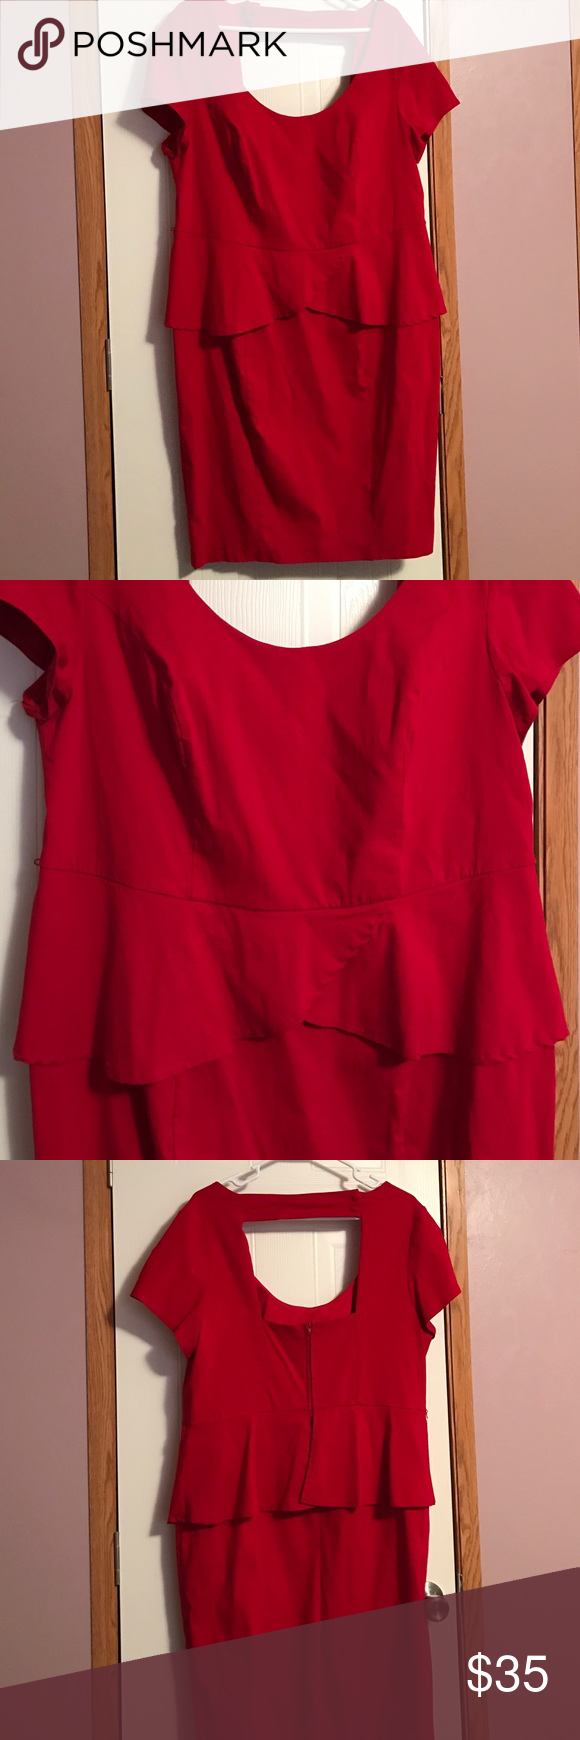 "Red Torrid dress Red Torrid dress. Hugs to body and had a peplum that covers imperfections in the mid section. Falls just above the knee on me and I am 5'6"". Cut out in back. Also has zipper in the back. Worn only once. Excellent condition. Torrid Dresses Midi"